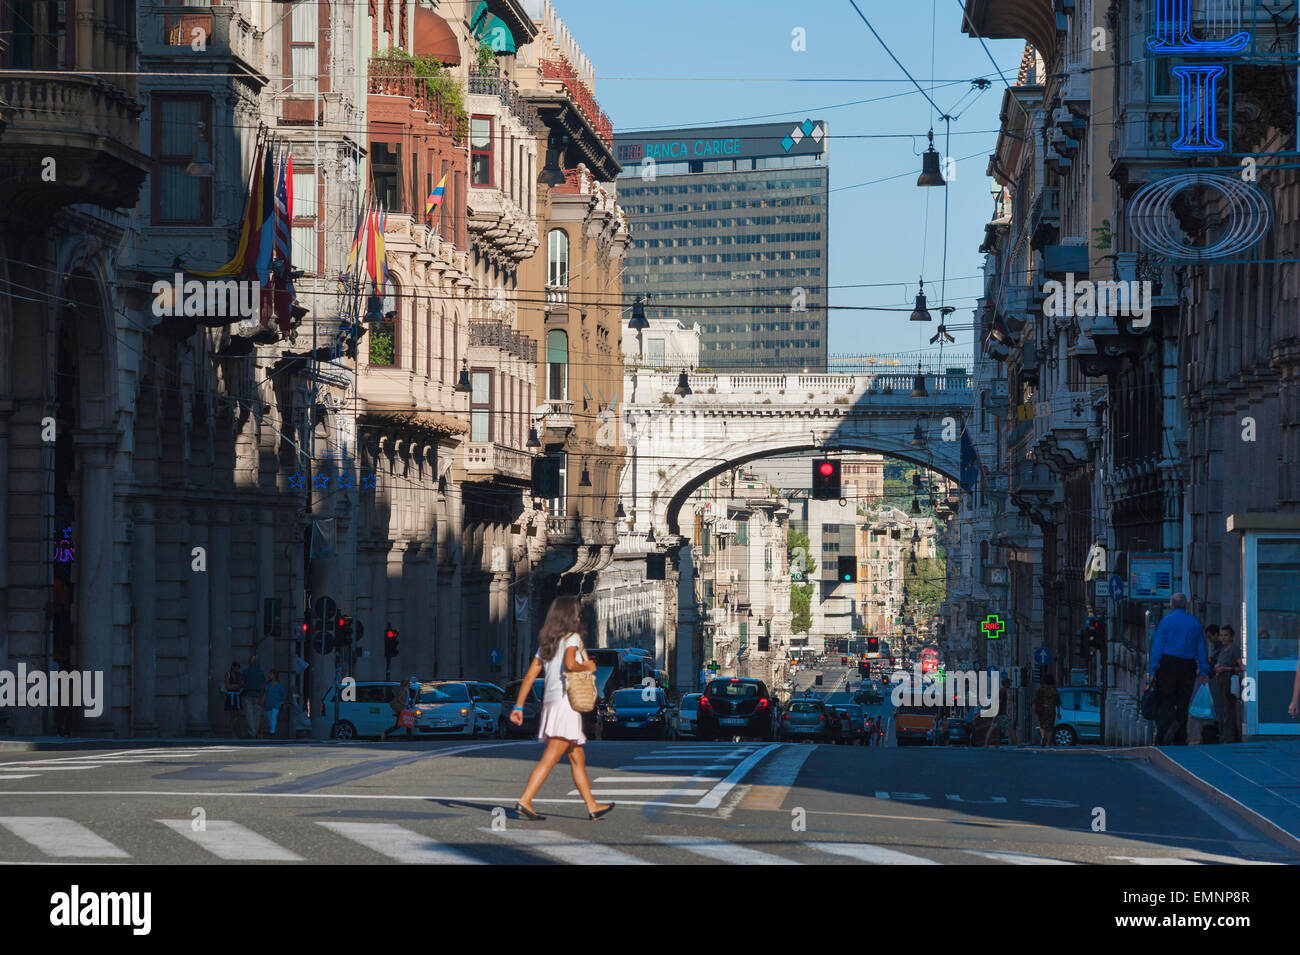 Genoa city street, a woman crosses the Via XX Settembre in the center of the city of Genoa, Liguria, Italy. - Stock Image